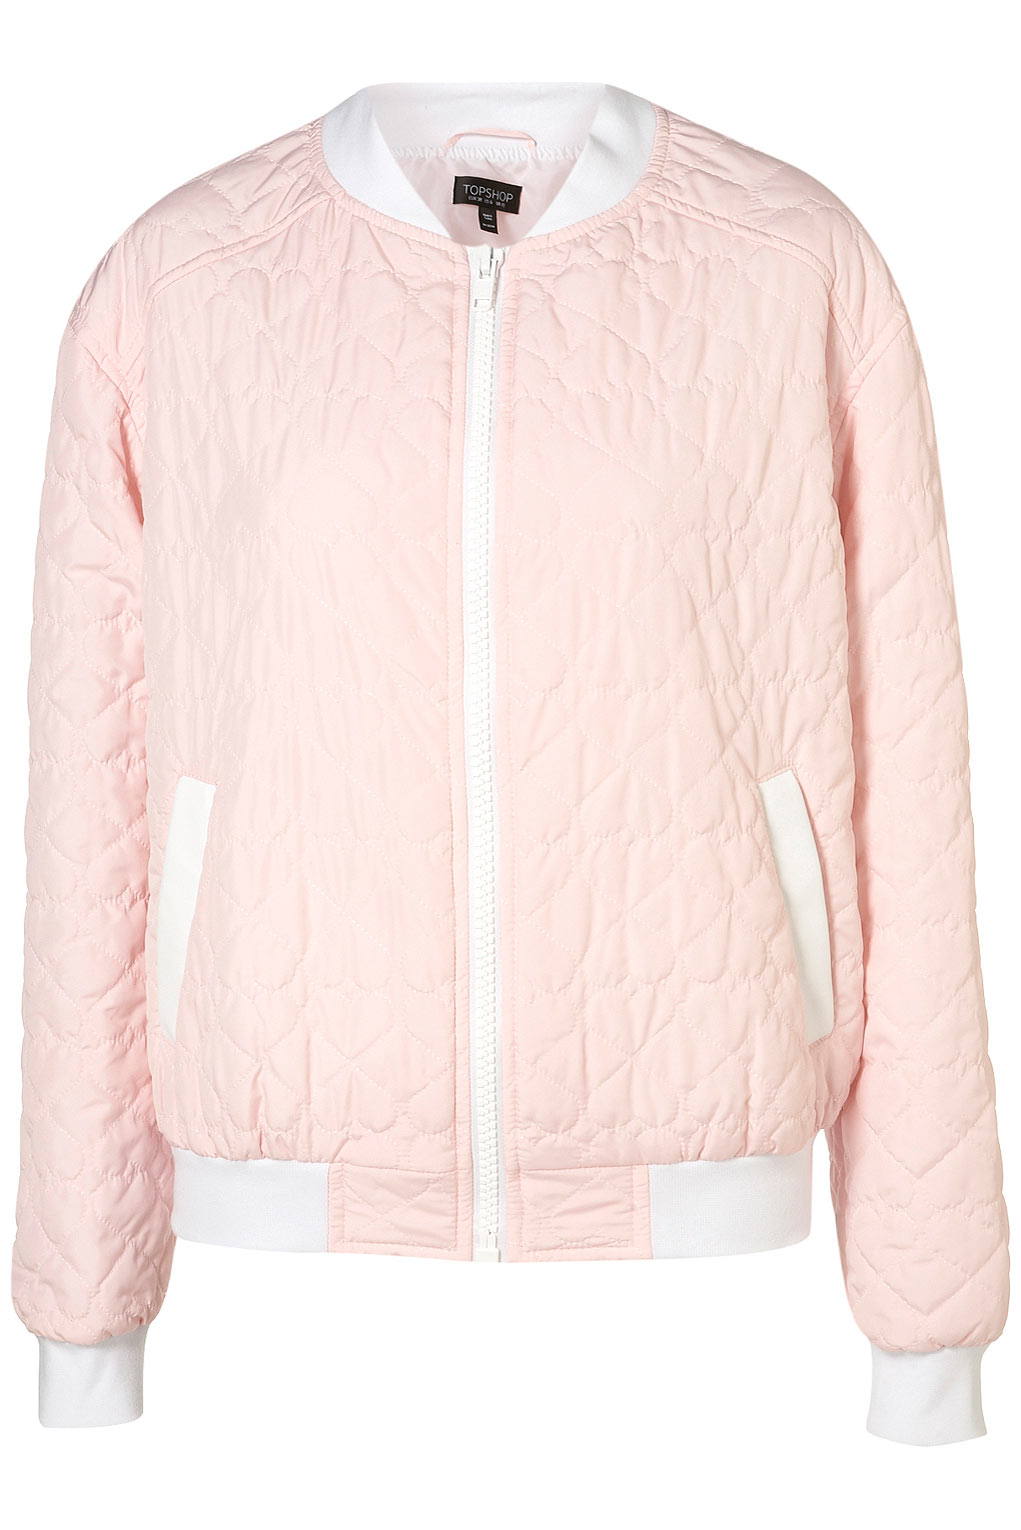 Topshop Heart Quilted Bomber Jacket In Pink Lyst